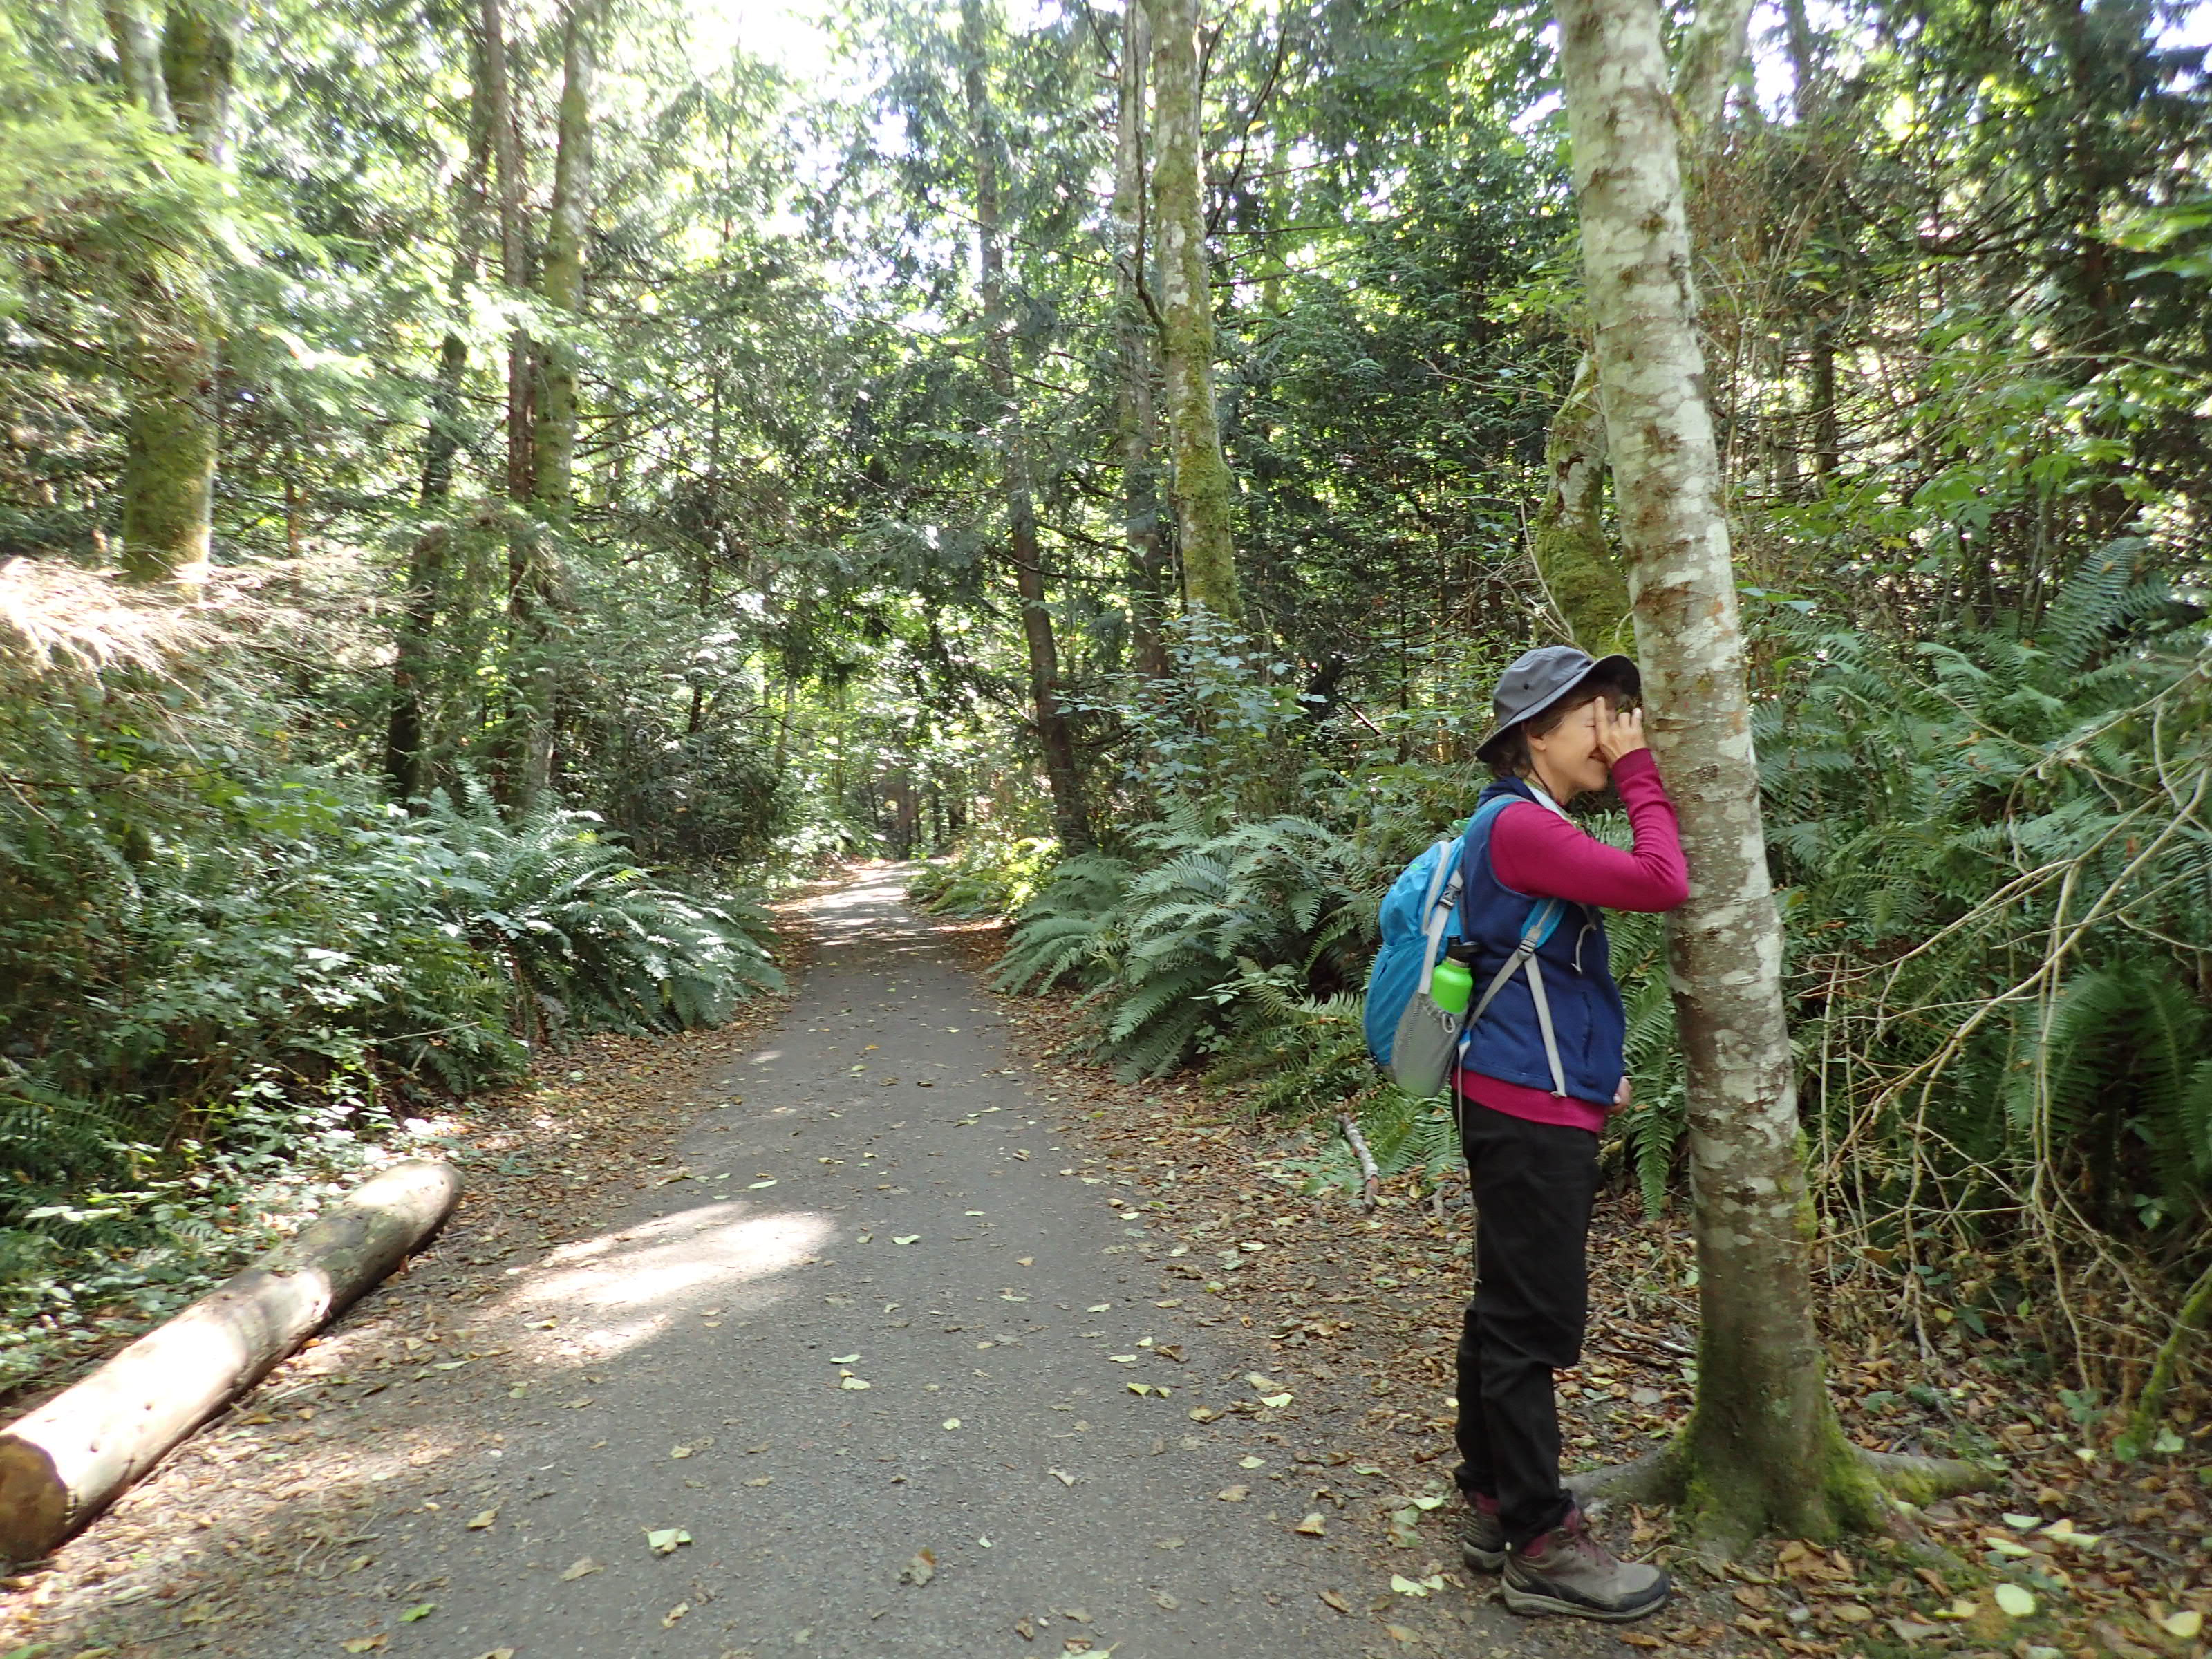 A child explores the forest at IslandWood's Bainbridge Island campus.